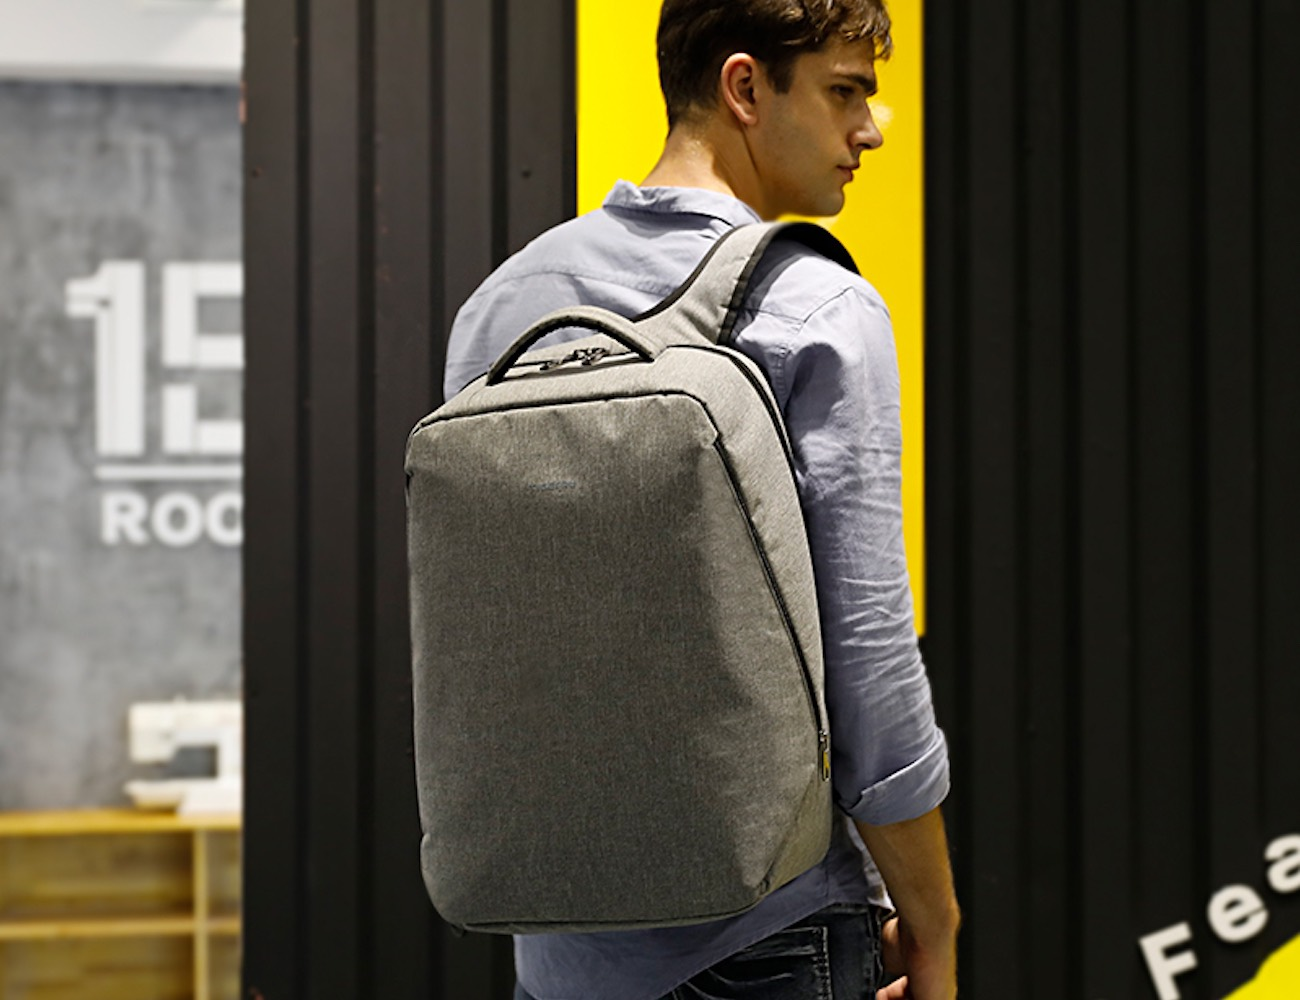 Minimalist Slim Urban Backpack